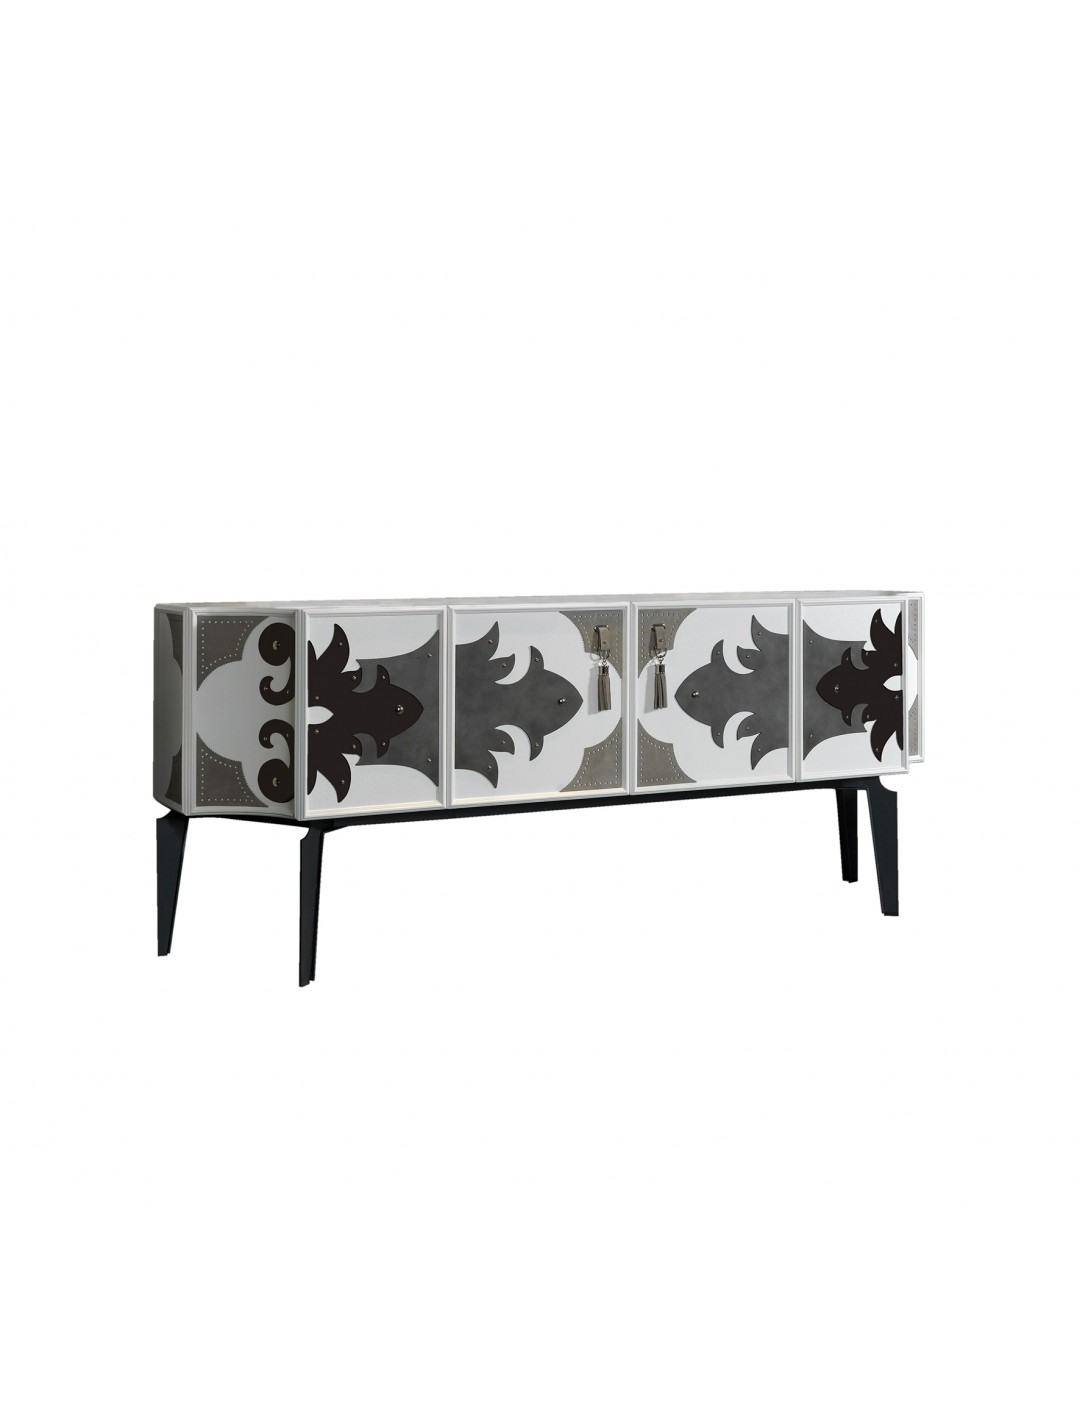 VALENTINA SIDEBOARD, IRON LEGS, WITH LEATHER DECORATION,